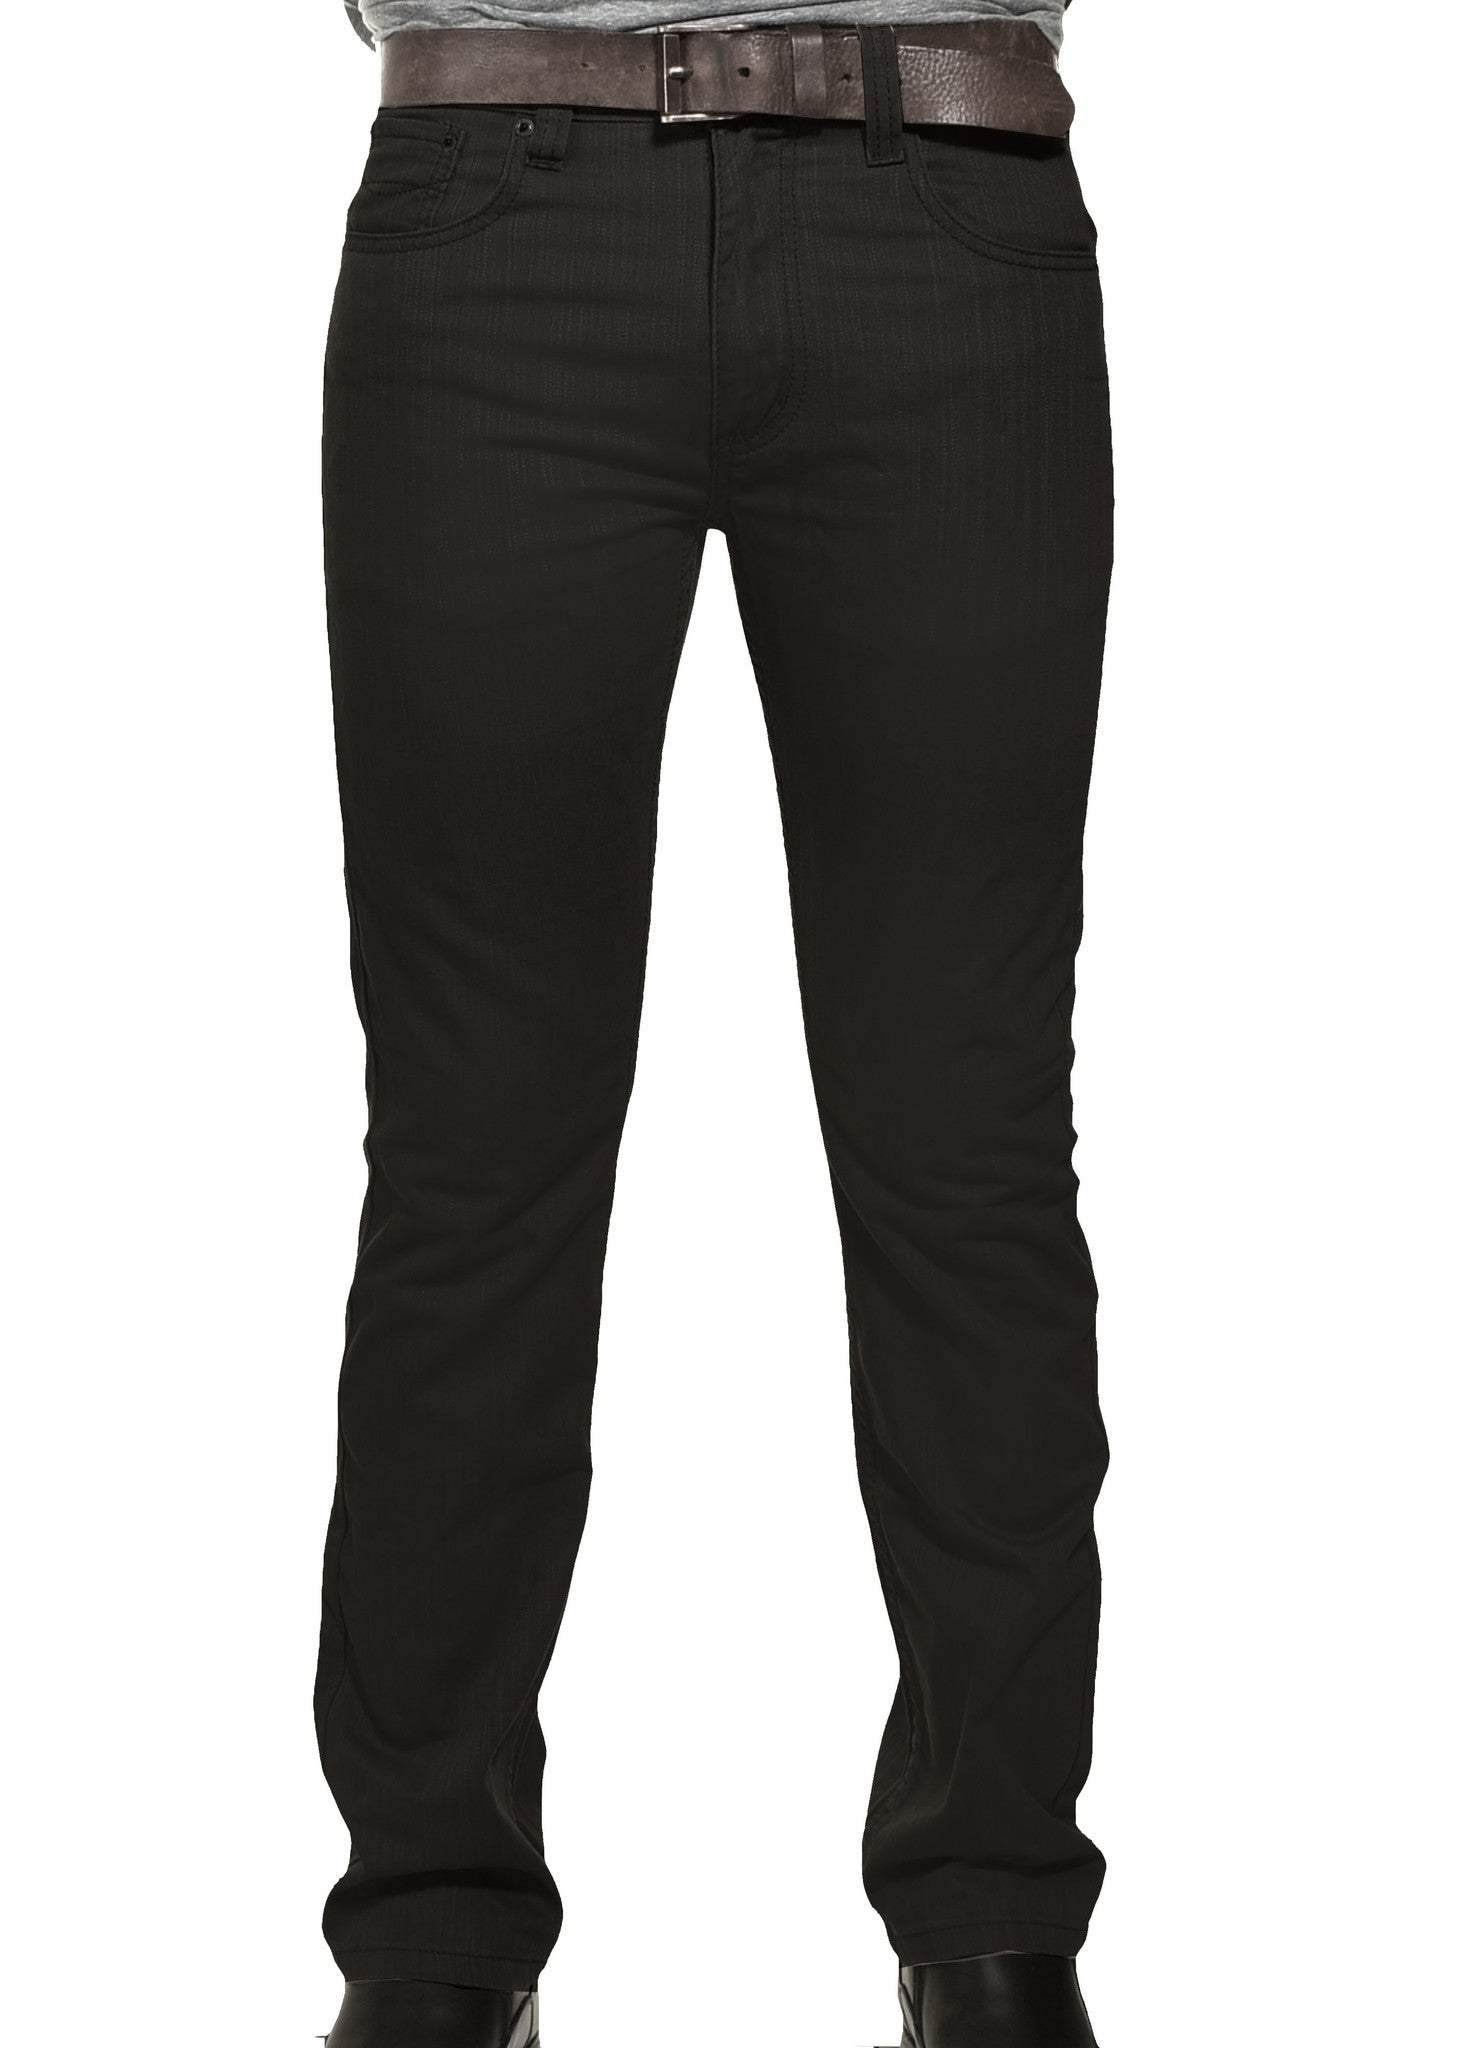 Victorious Mens DL991 Slim Fit Premium Jeans | Black